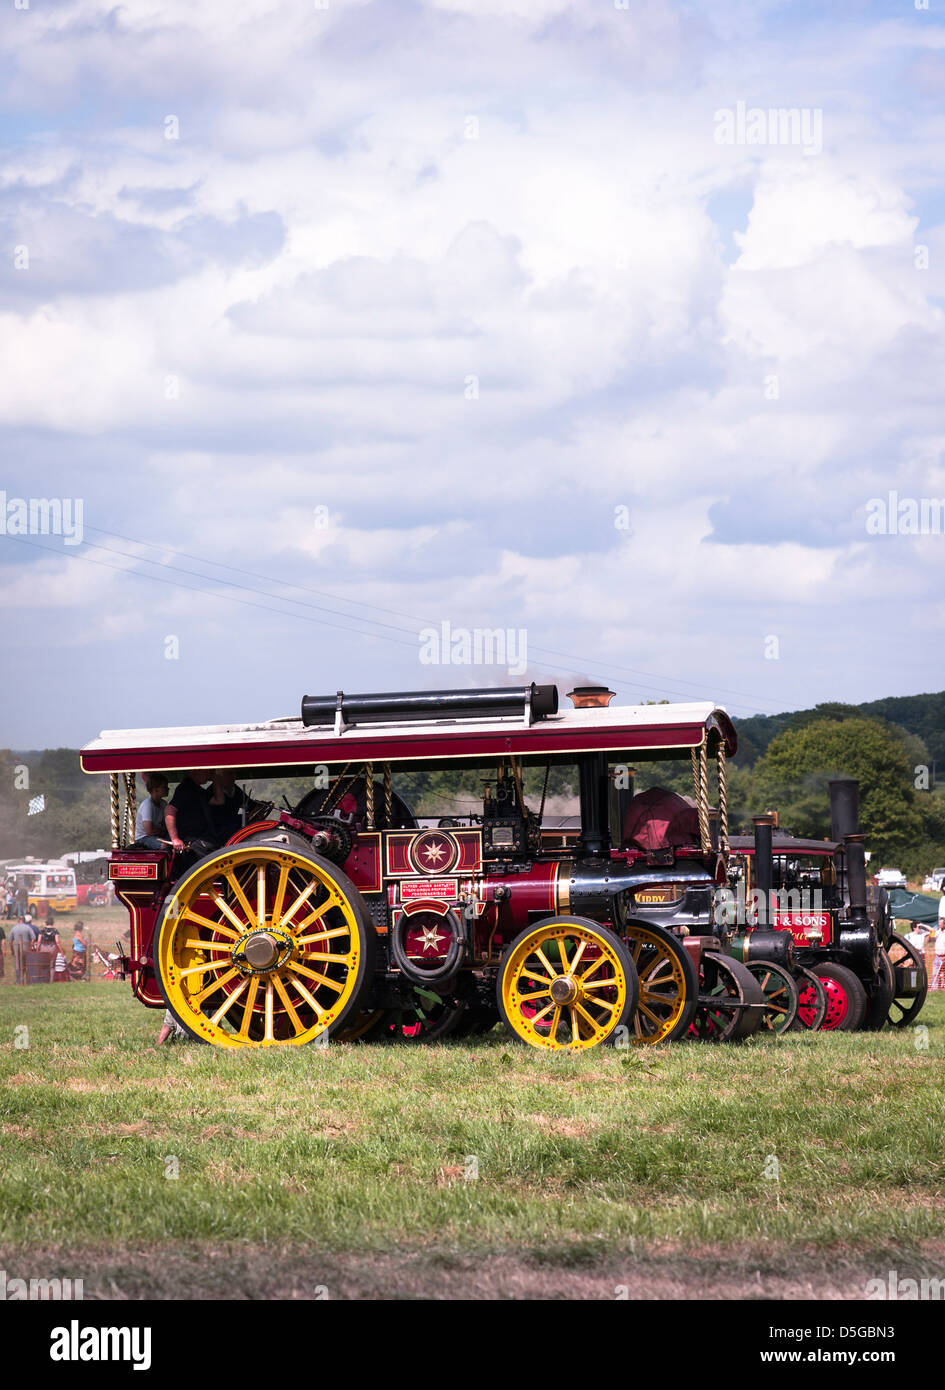 Preserved Burrell Showman's engine on display in Wiltshire UK - Stock Image